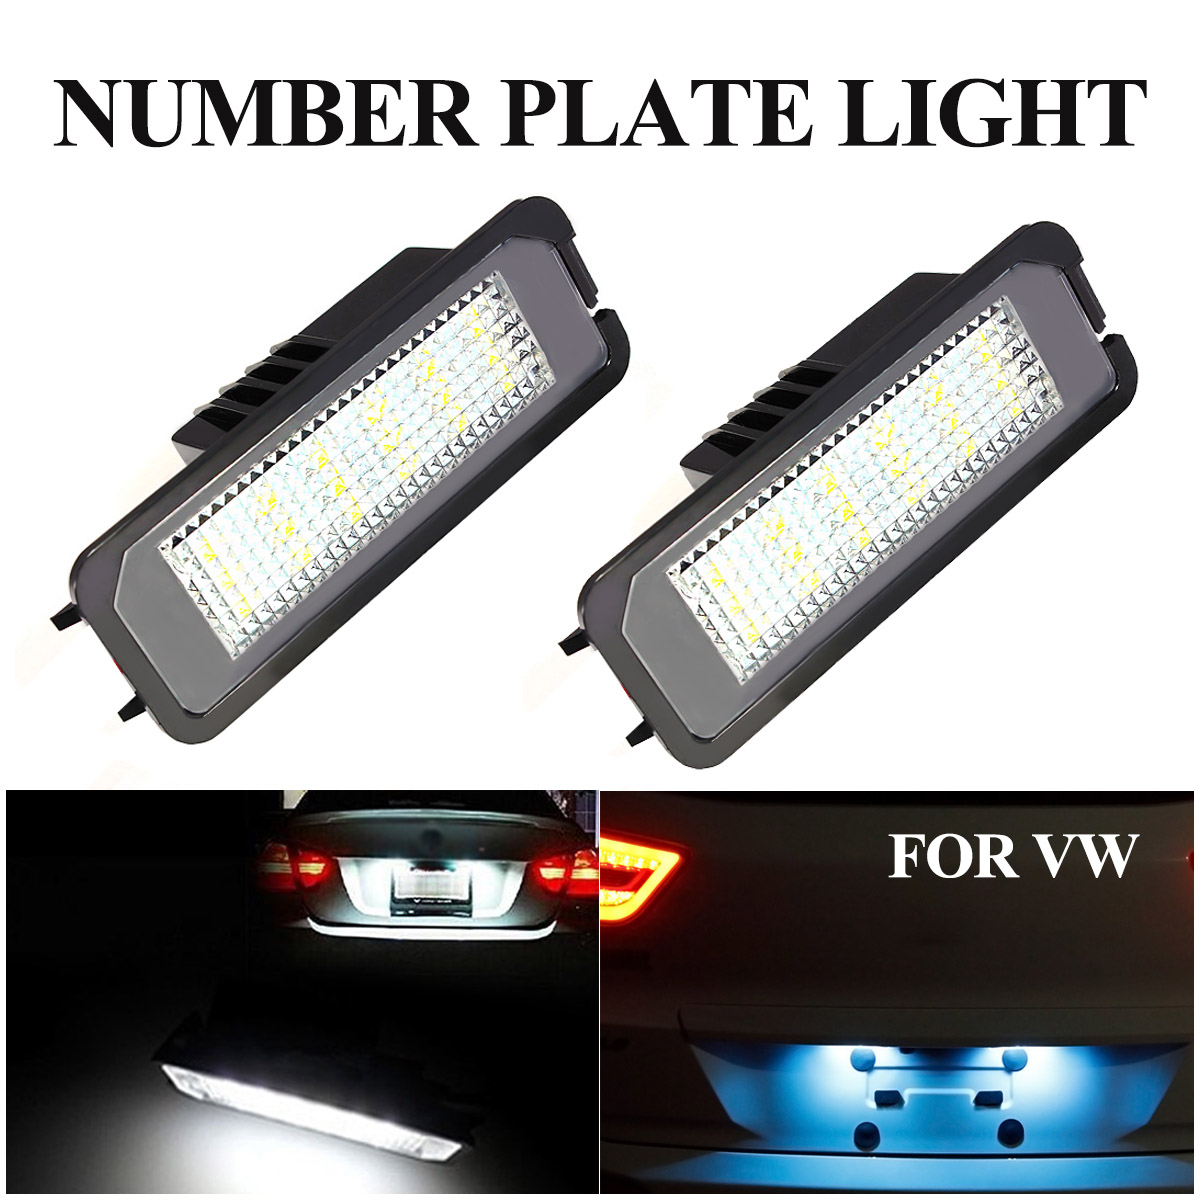 2pcs Car 12V <font><b>LED</b></font> Number Licence Plate <font><b>Light</b></font> Lamps for <font><b>VW</b></font> <font><b>GOLF</b></font> CTI <font><b>MK5</b></font> MK6 PASSAT 3D0943021A 3C5943021 1K8943021 7L6943021 image